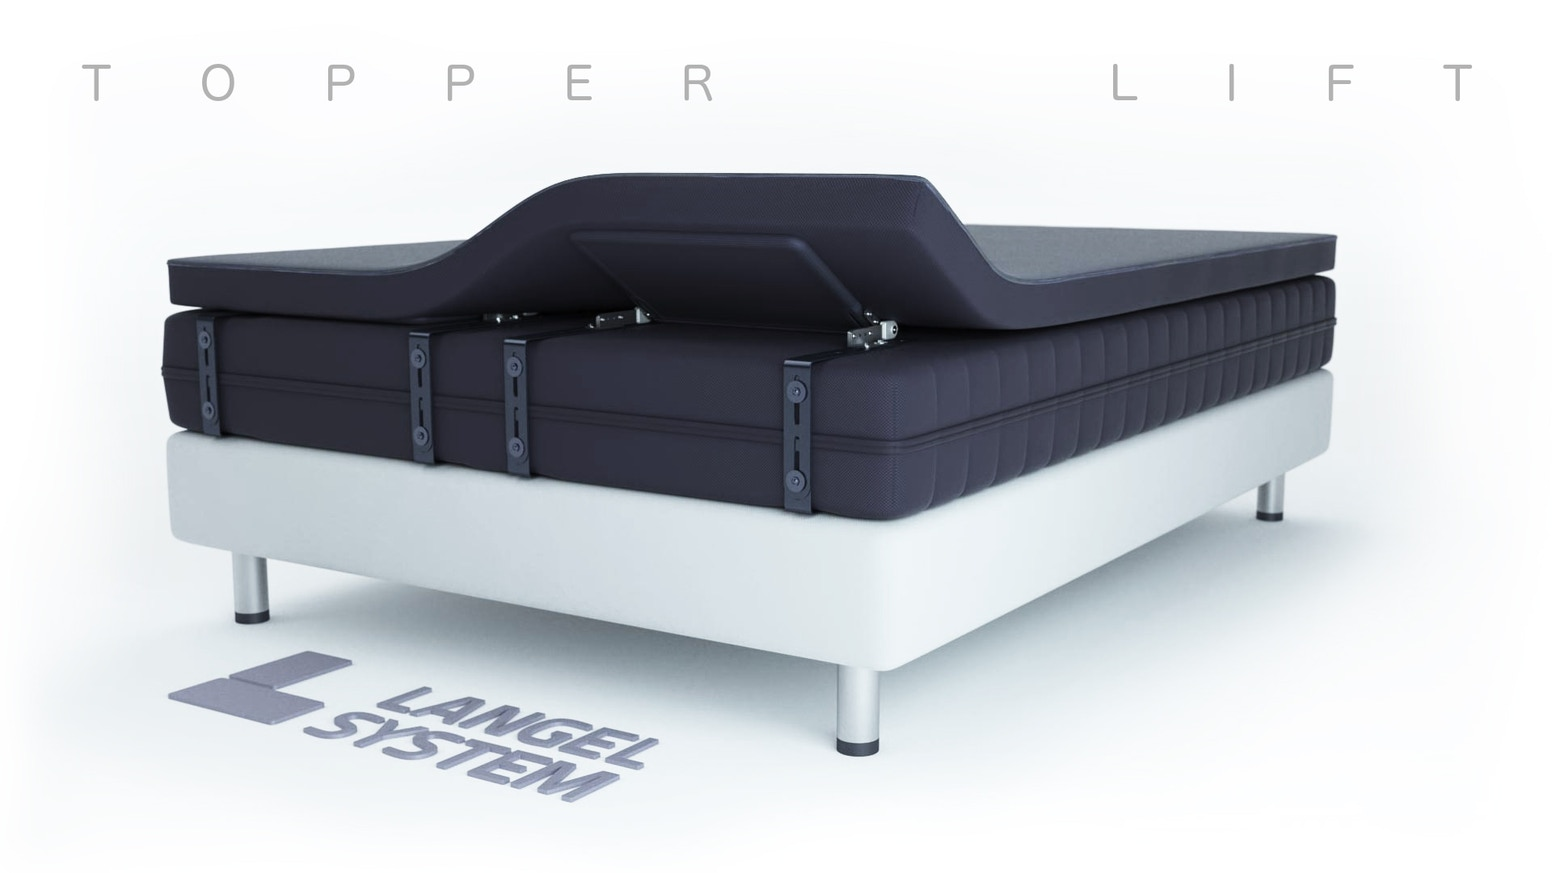 Topmatras Swiss Sense.Topper Lift Reinvent The Mattress By Langel System Reinvent The